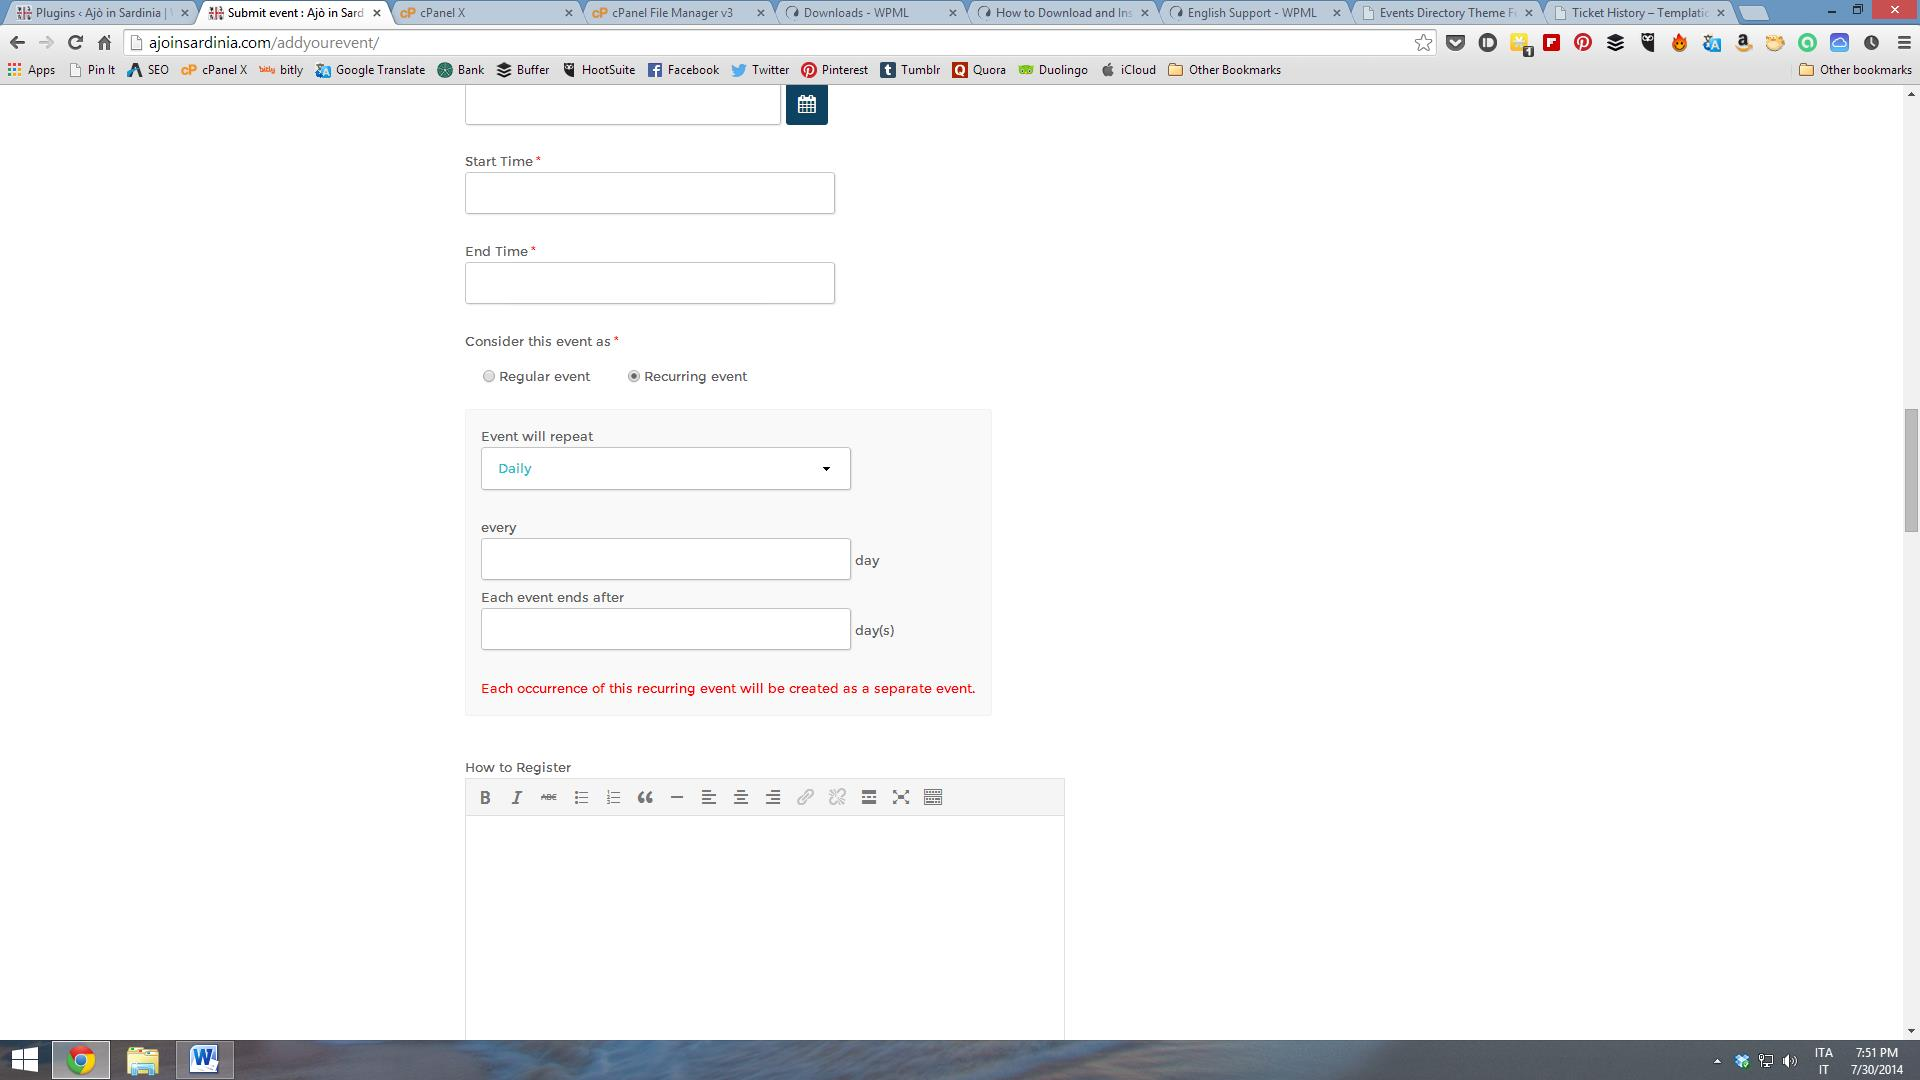 WPML causing problems with event submission form - WPML